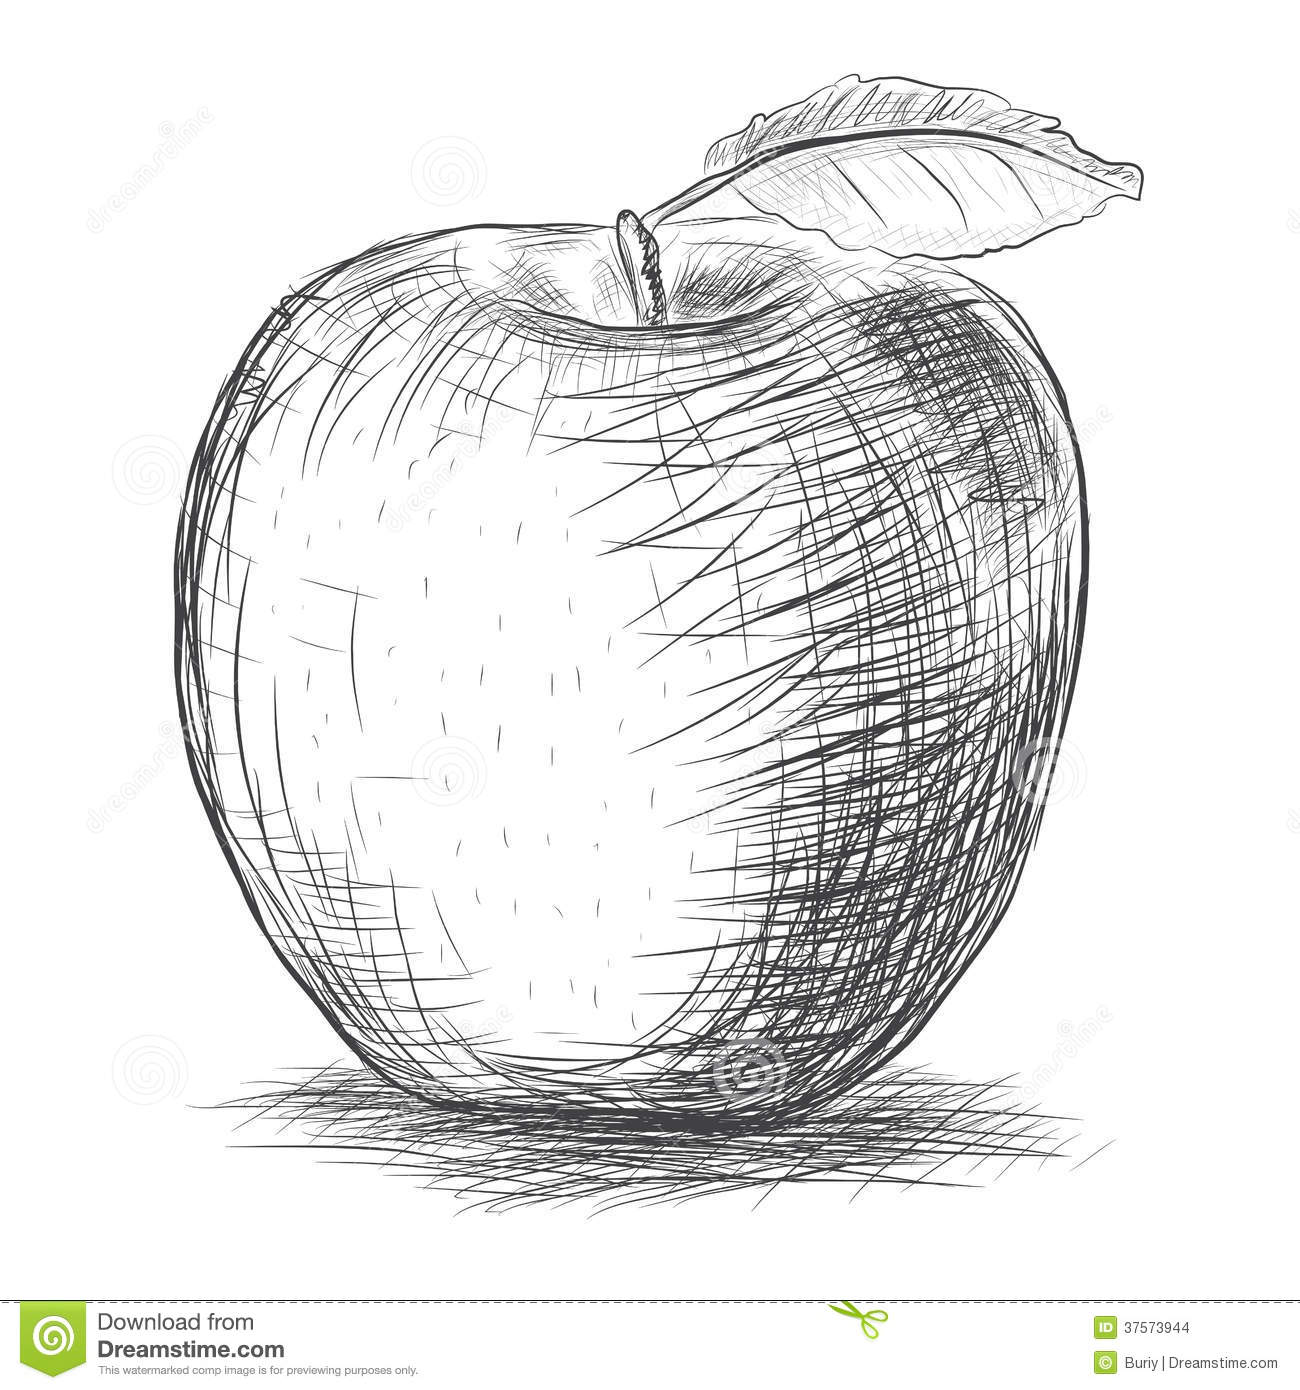 Croquis Pomme Illustration De Vecteur Illustration Du